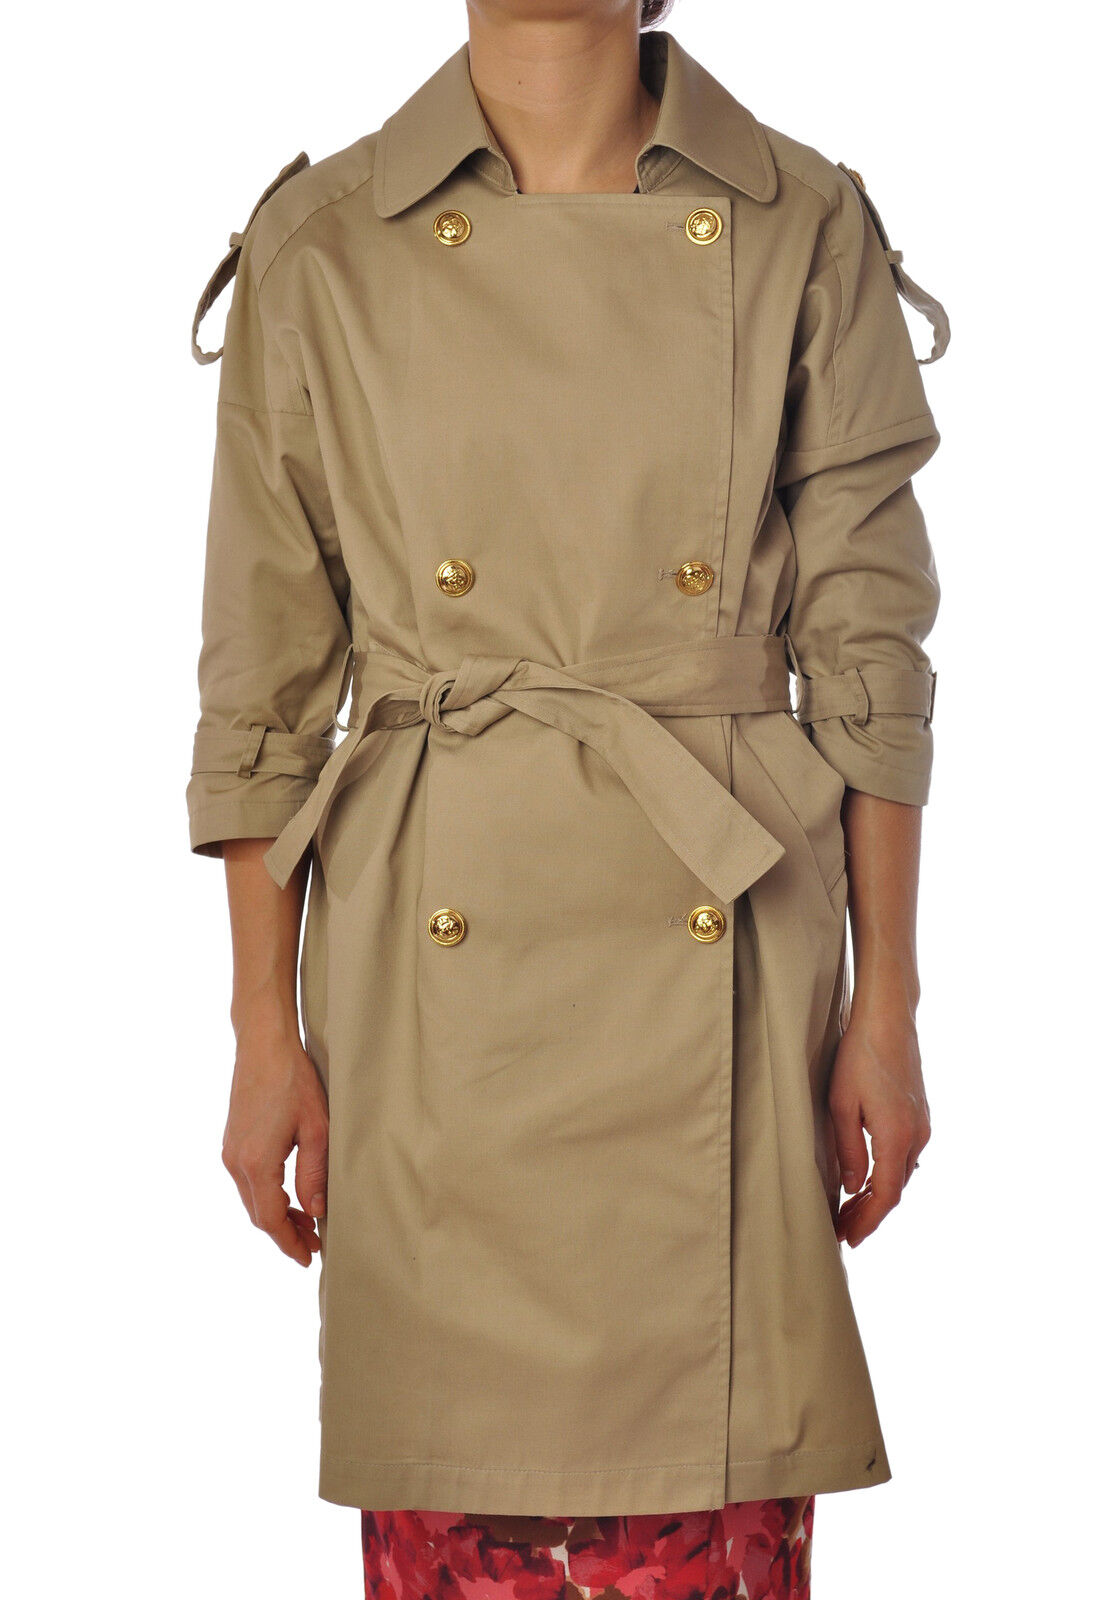 Merci  -  Coats - Female - 40 - Beige - 1705312C160720